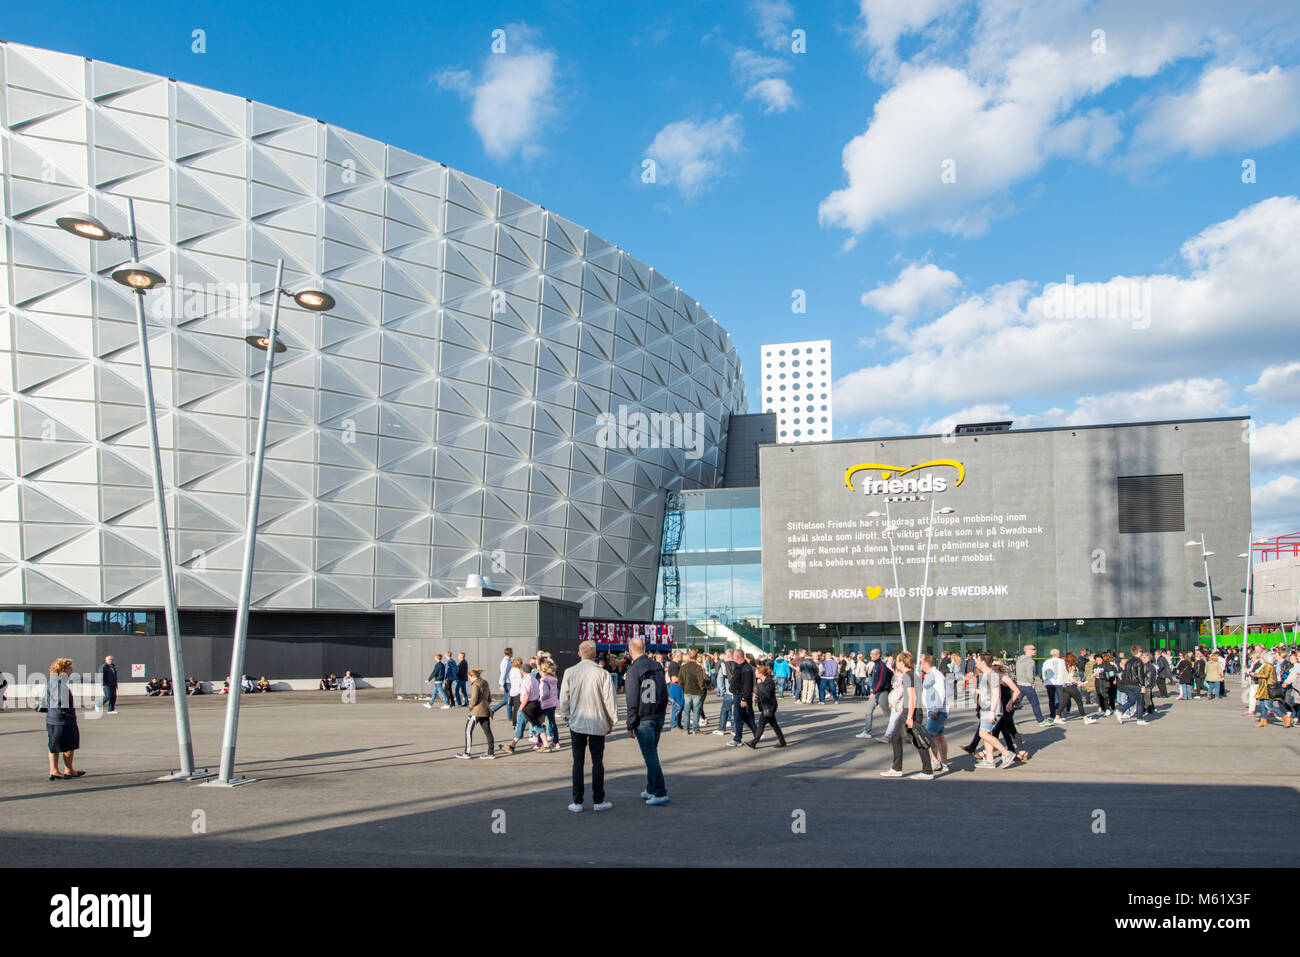 Friends Arena in Stockholm seating 50.000 is the largest stadium in Stockholm and the venue for major sports events - Stock Image